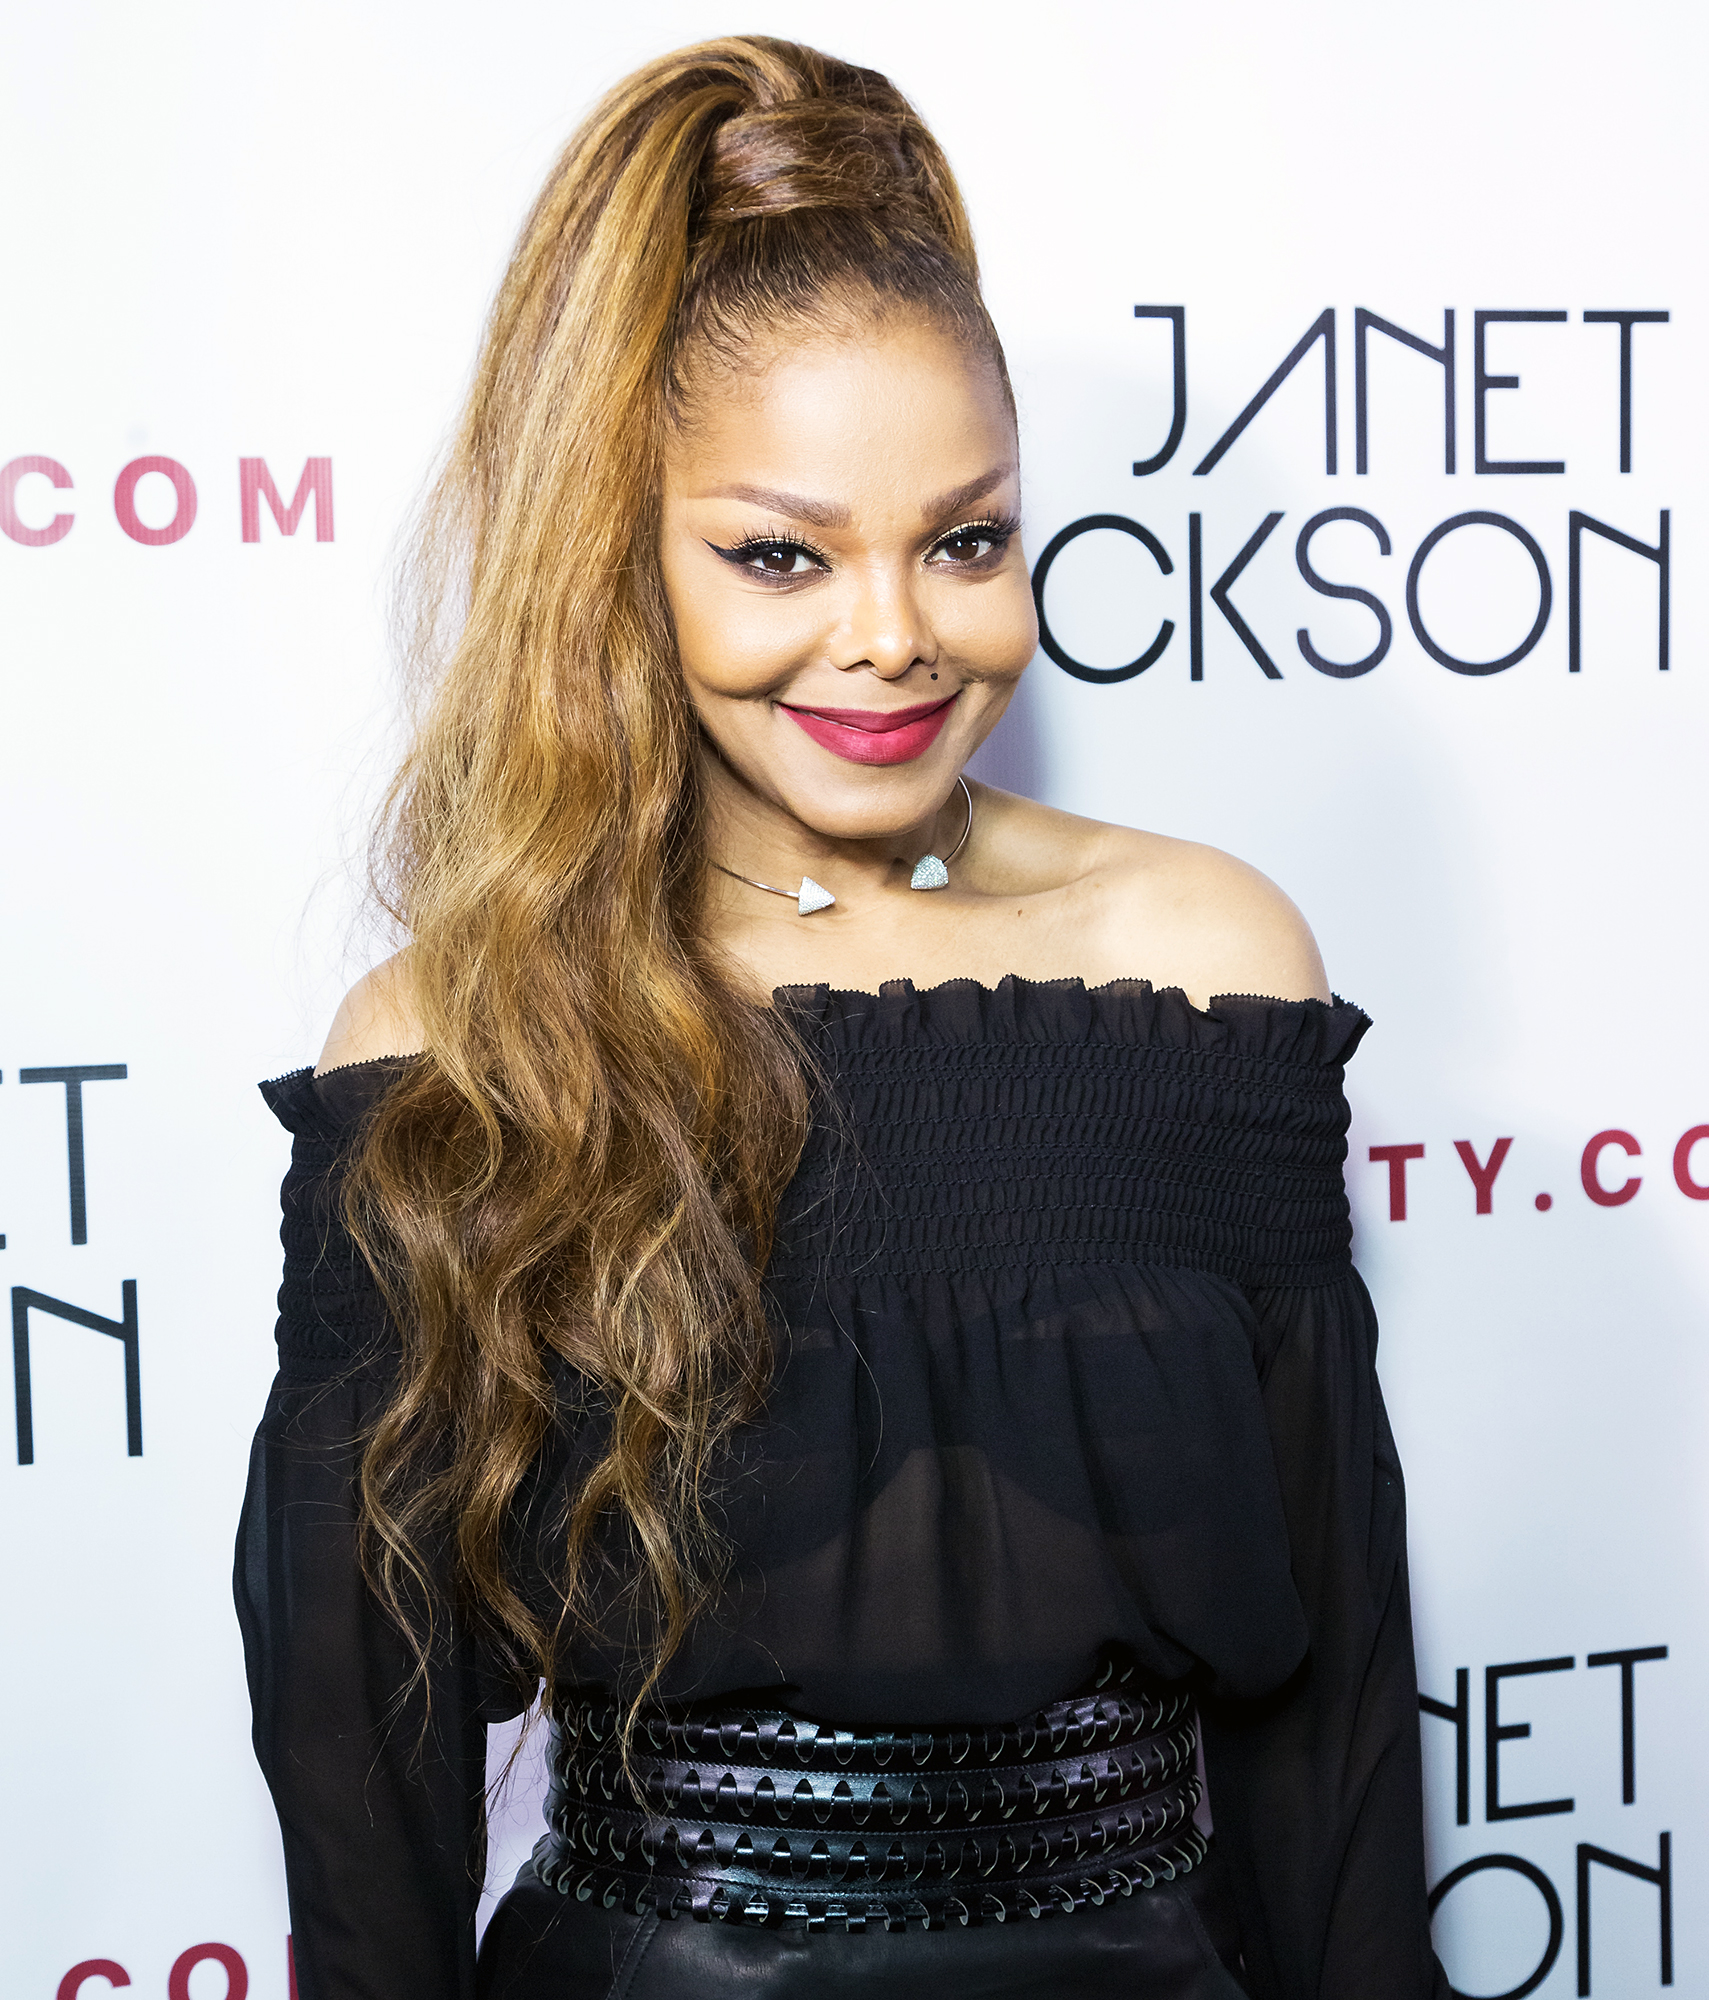 Janet Jackson calls 911 to check on son's welfare